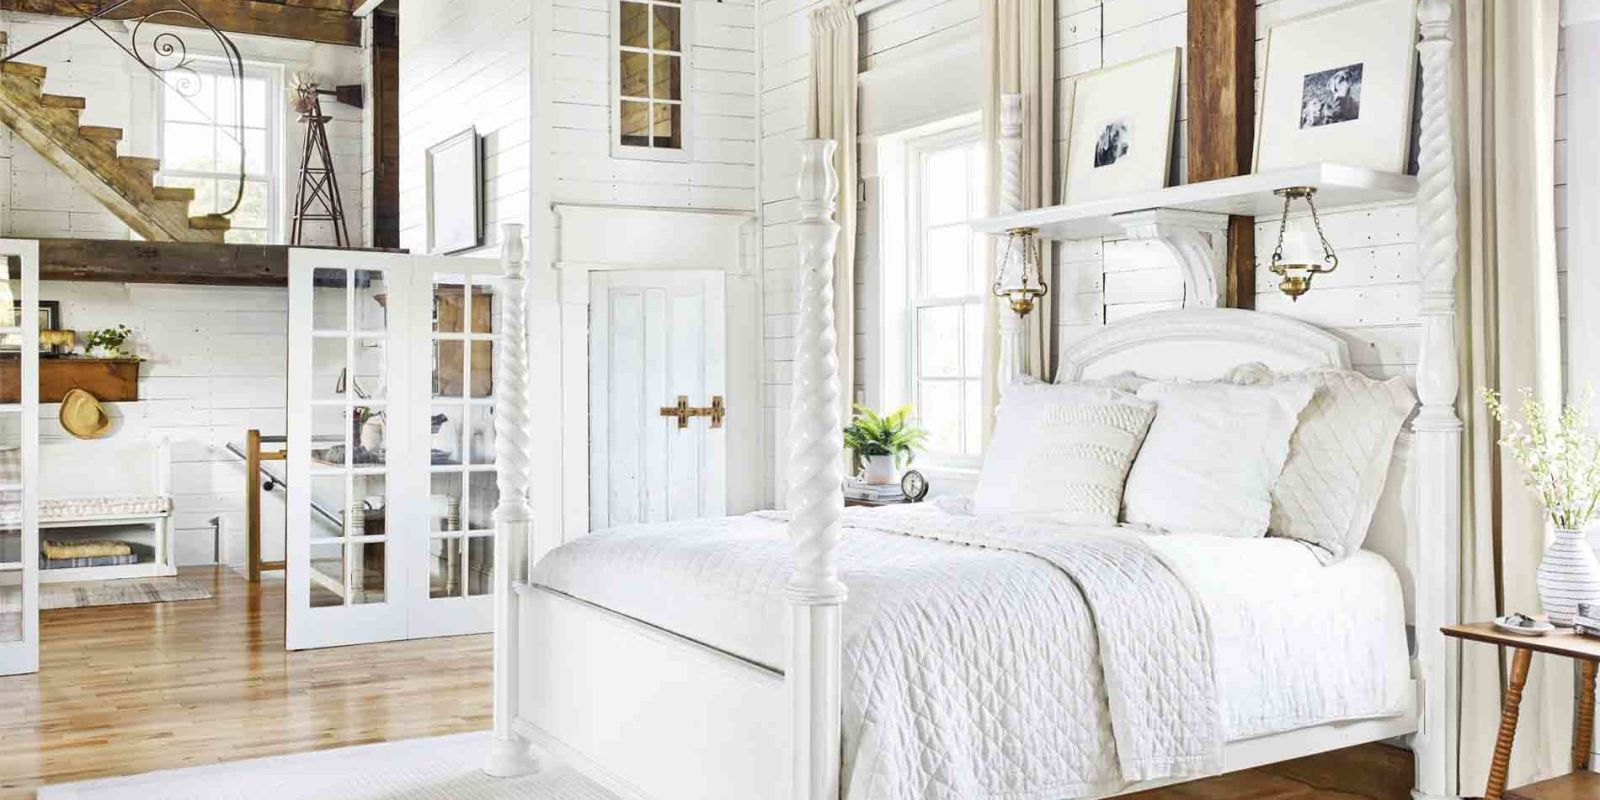 Great ideas for bedroom decor